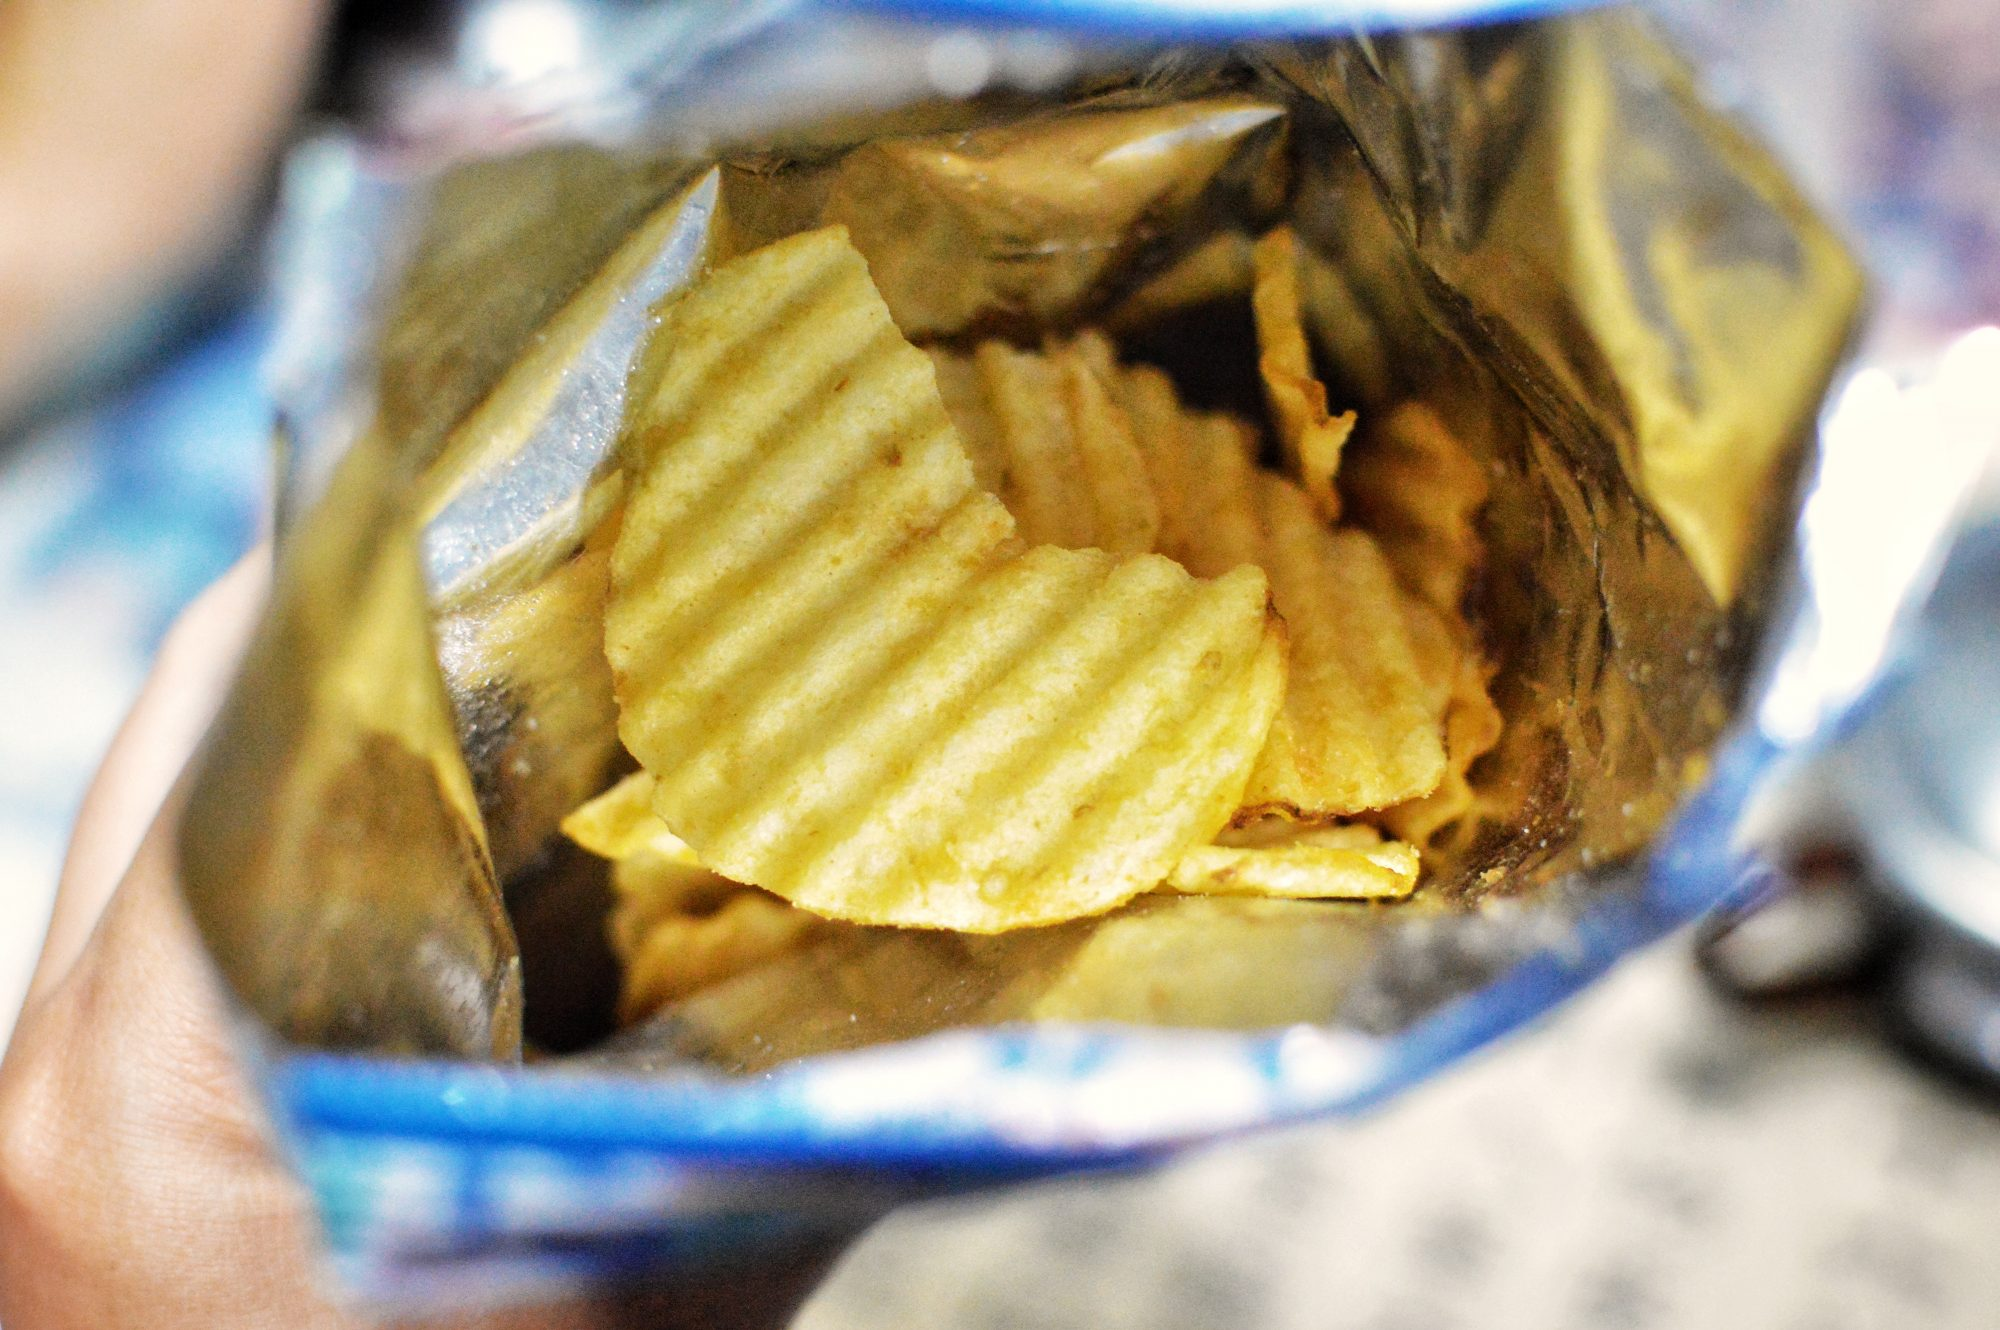 Why Are Potato Chip Bags Always Half-Full?